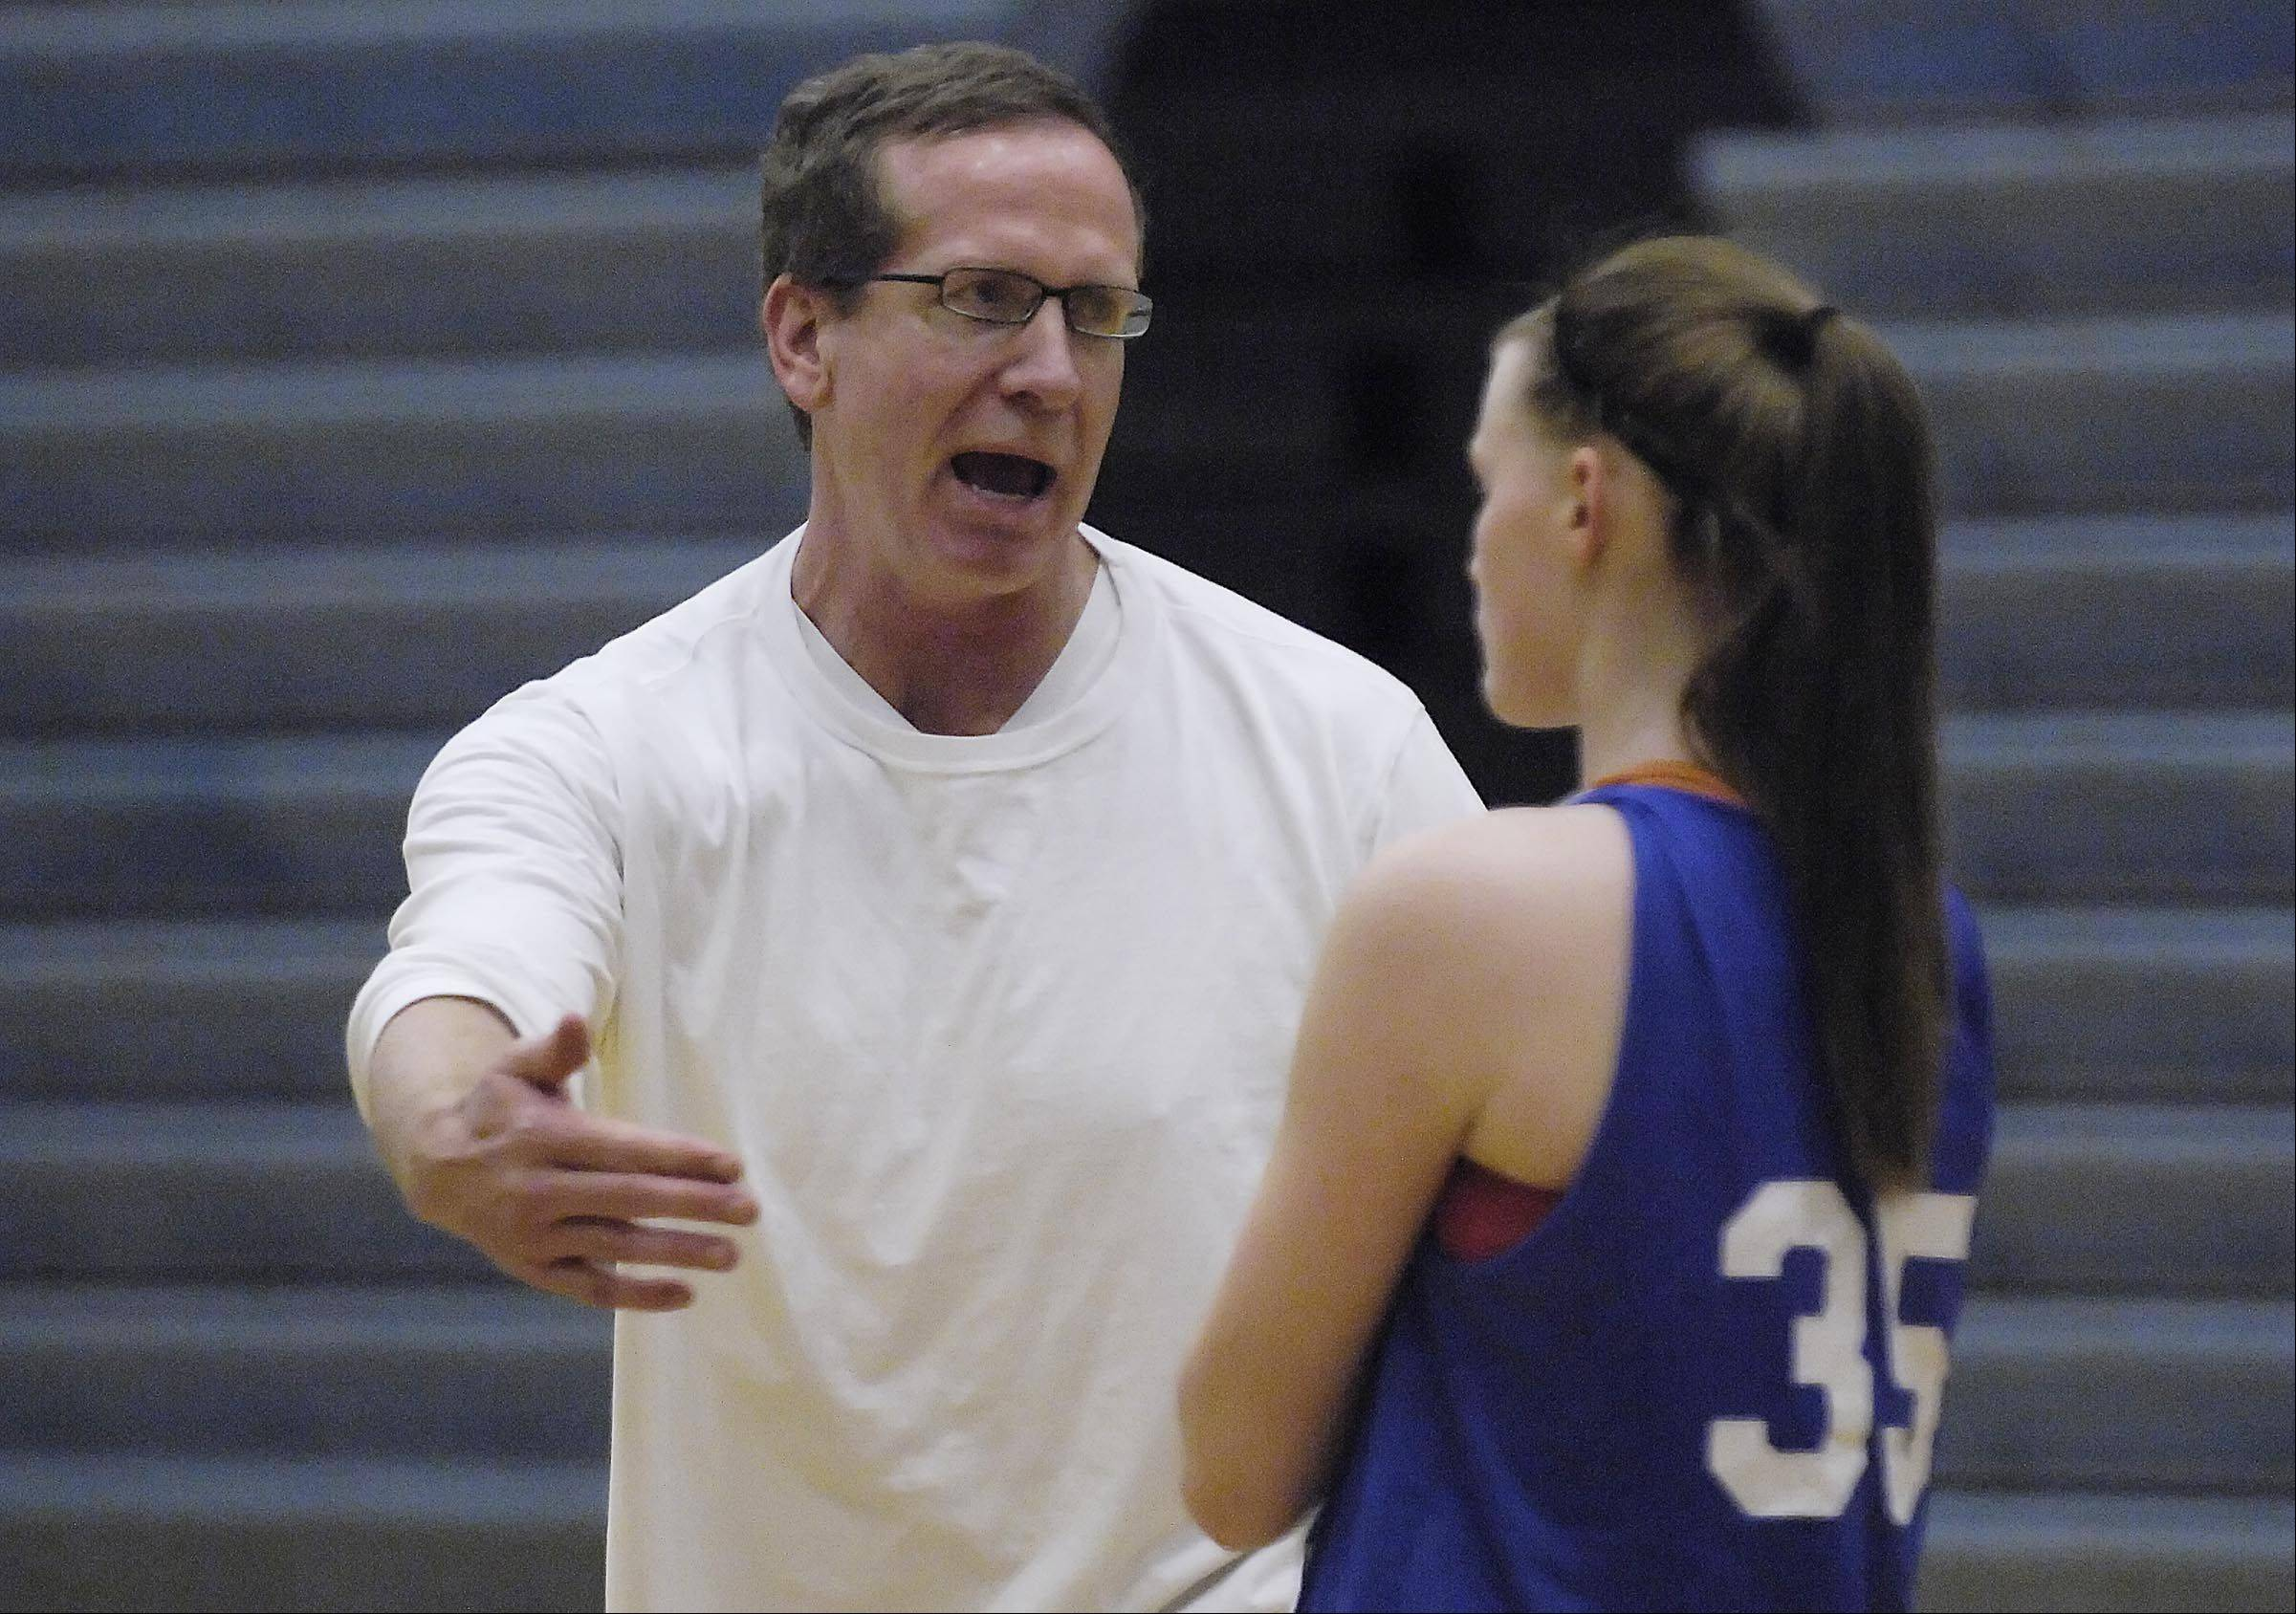 New Burlington Central girls basketball head coach Mark Smith takes over a program that hasn't won a regional title since 1990.